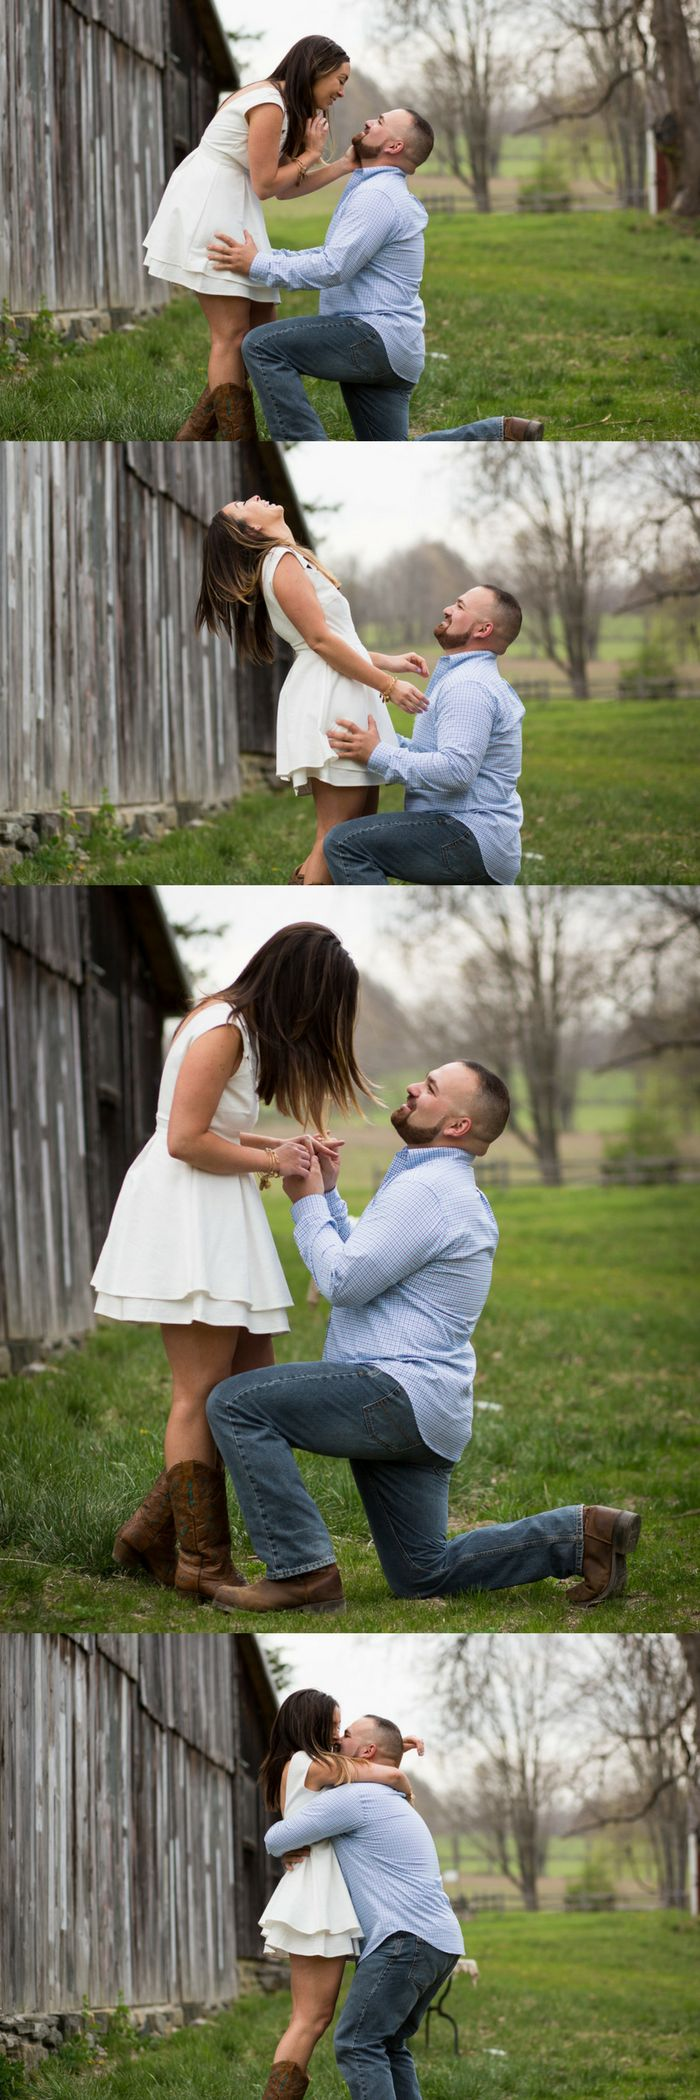 He asked her to marry him in the middle of a photo shoot, and it's so sweet!